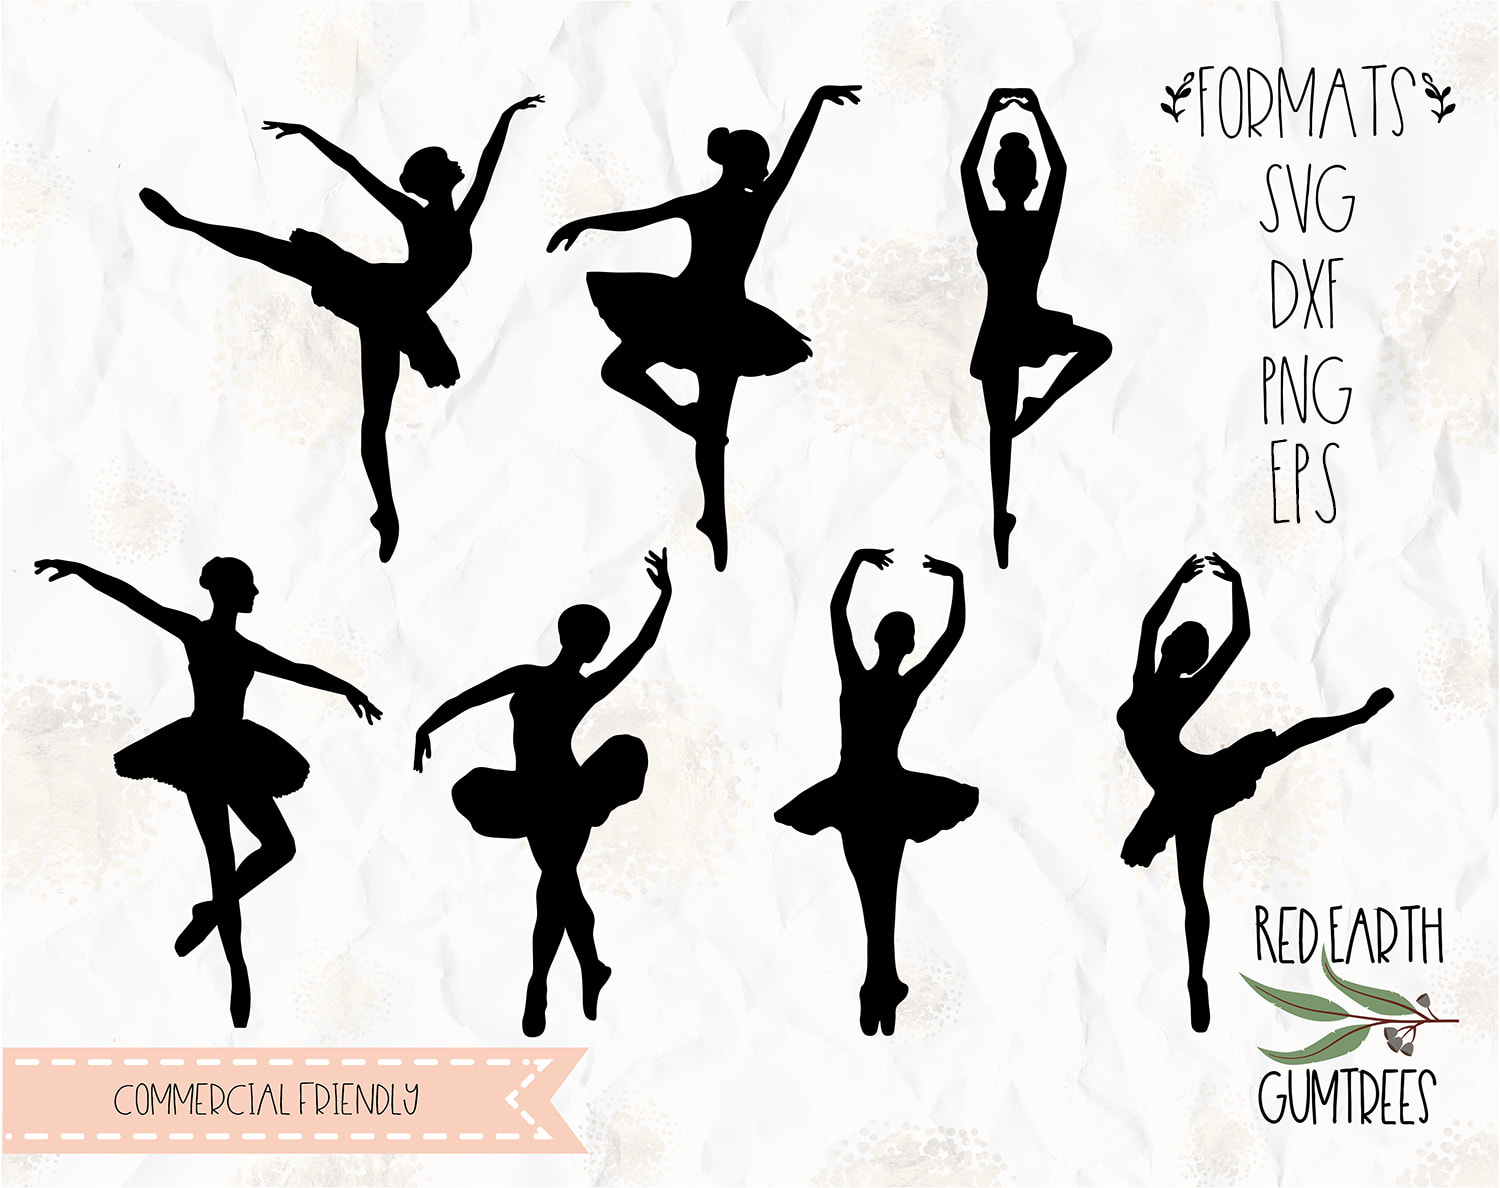 Ballerina Stance Ballerina Poses Silhouette Ballerina Dancing Silhouettes Ballet Poses Svg Ballerina Clipart In Svg Eps Dxf Png Formats Cricut Silhouette Cameo Vinyl Decal T Shirt Design Mtc Scal Iron On Vinyl